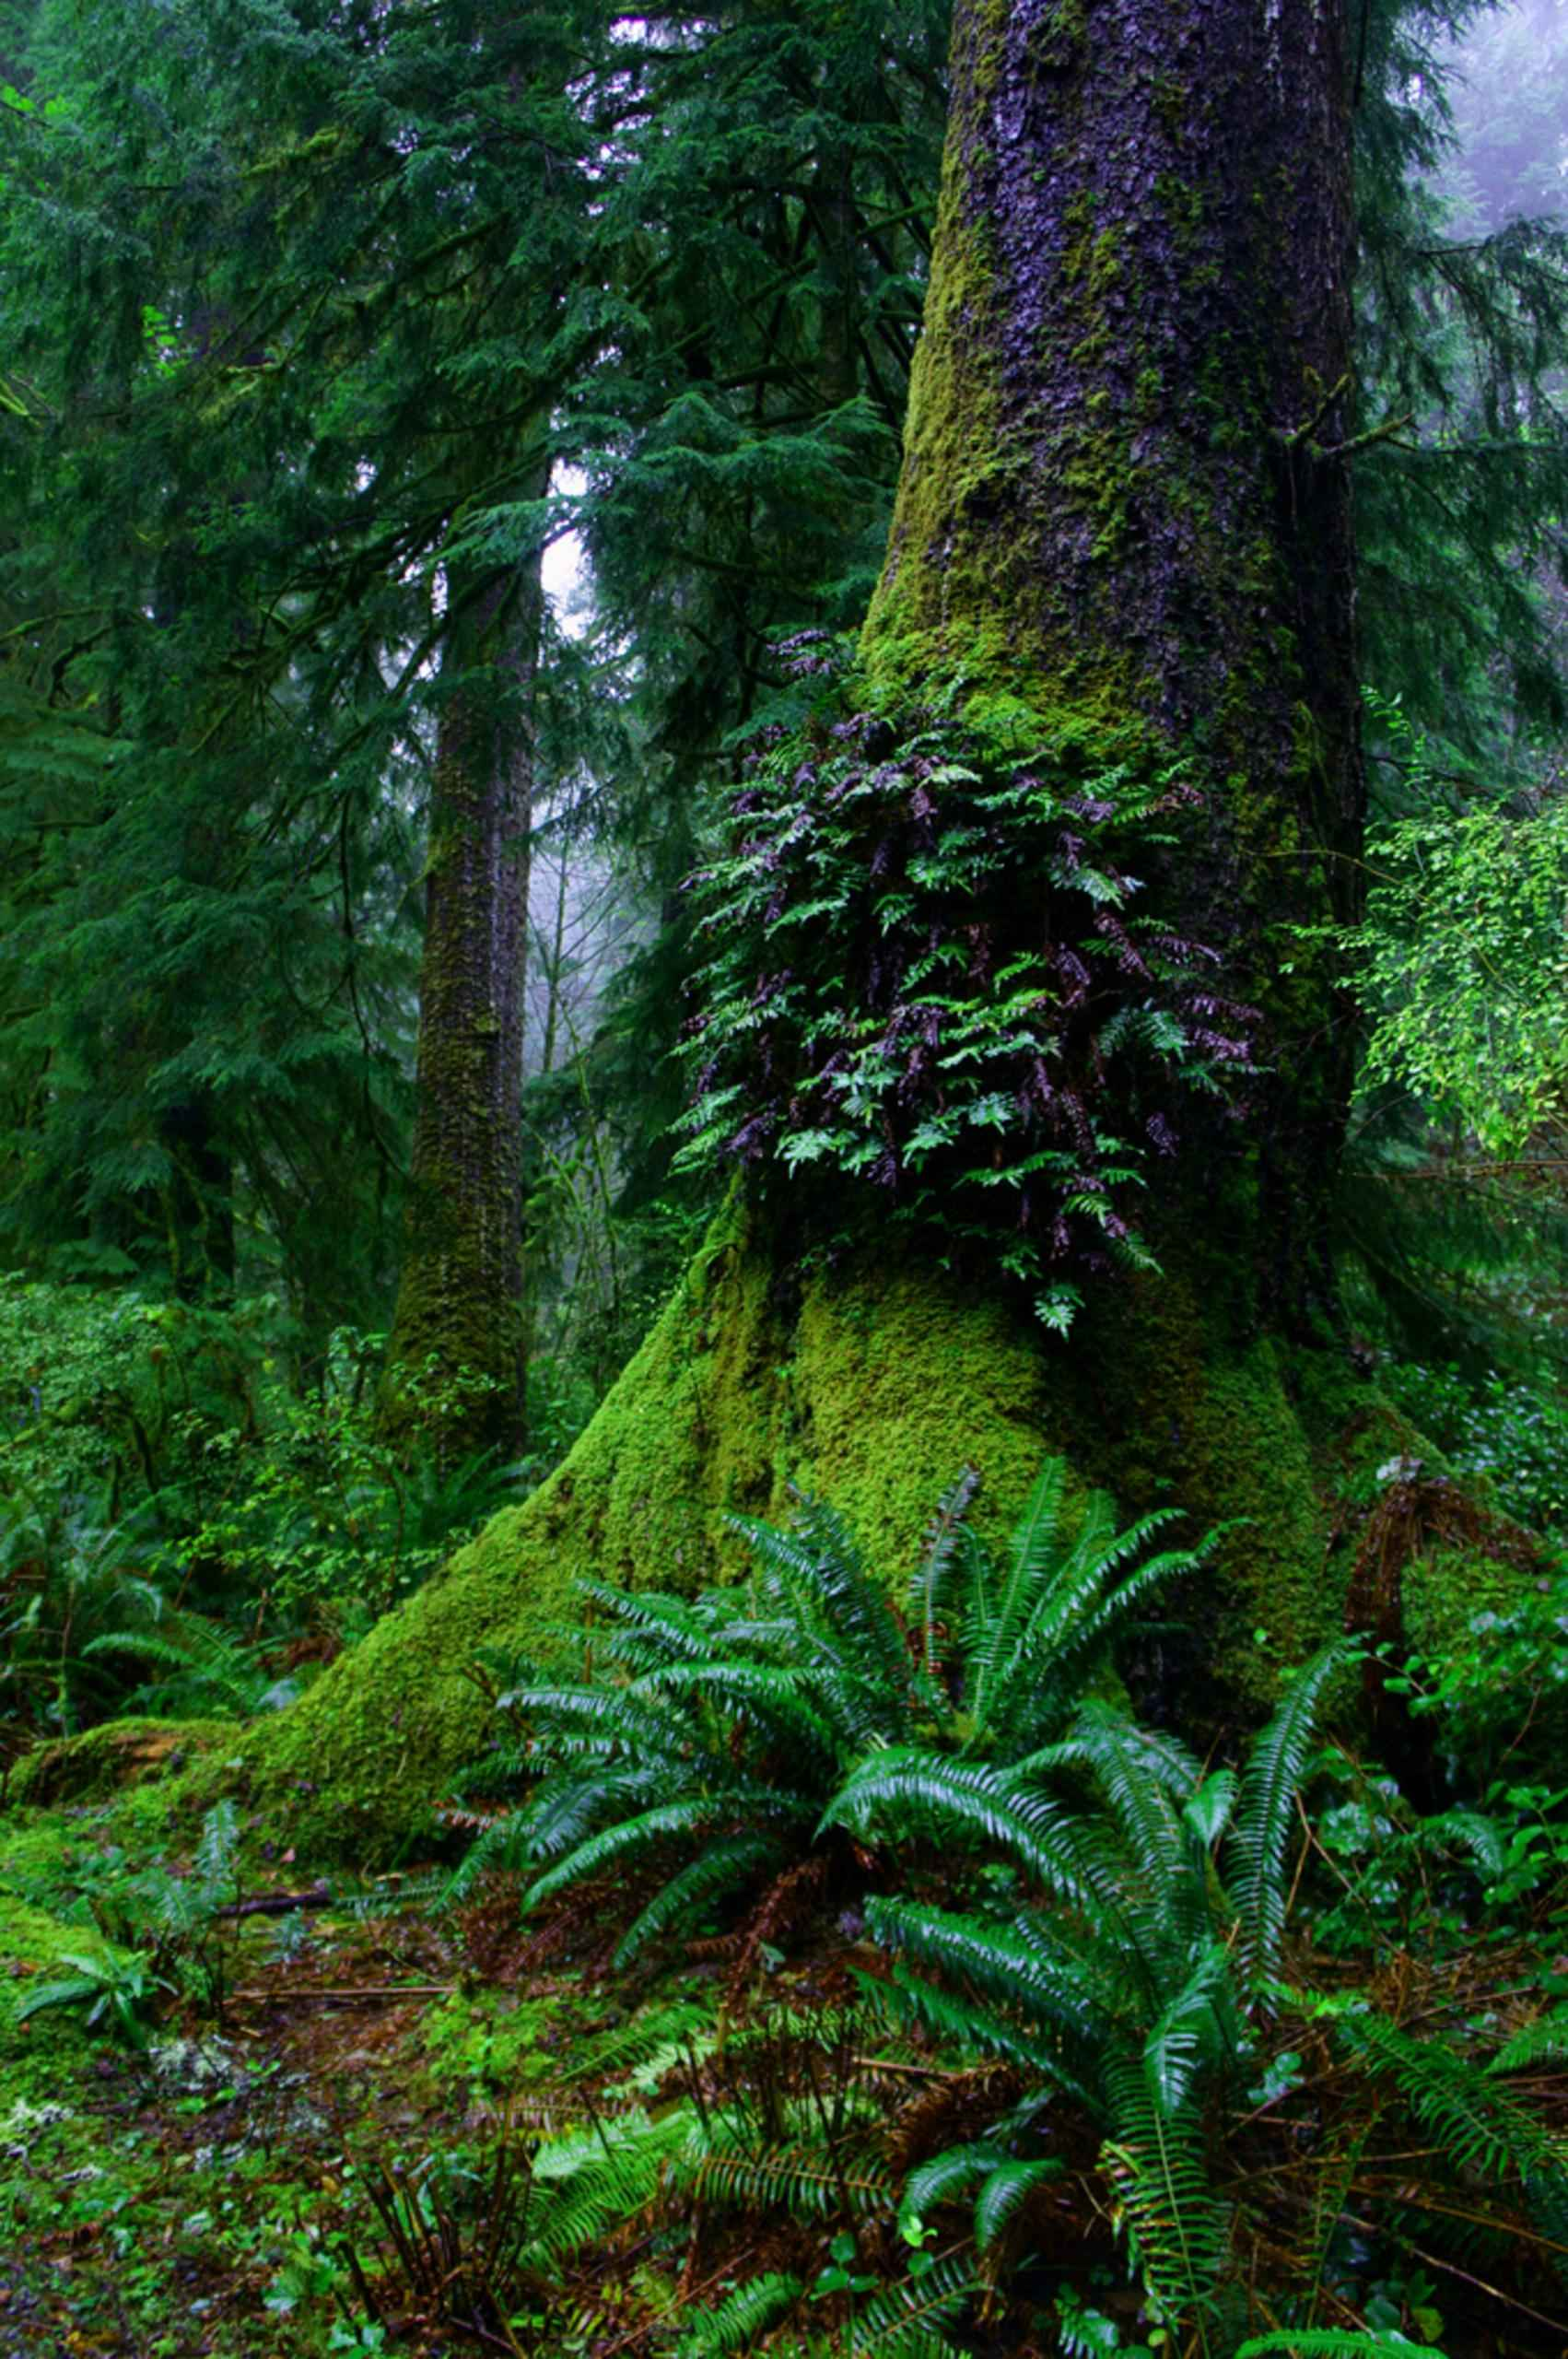 [Resim: Ferns_grow_on_an_old_growth_tree_jungle_scenic.jpg]